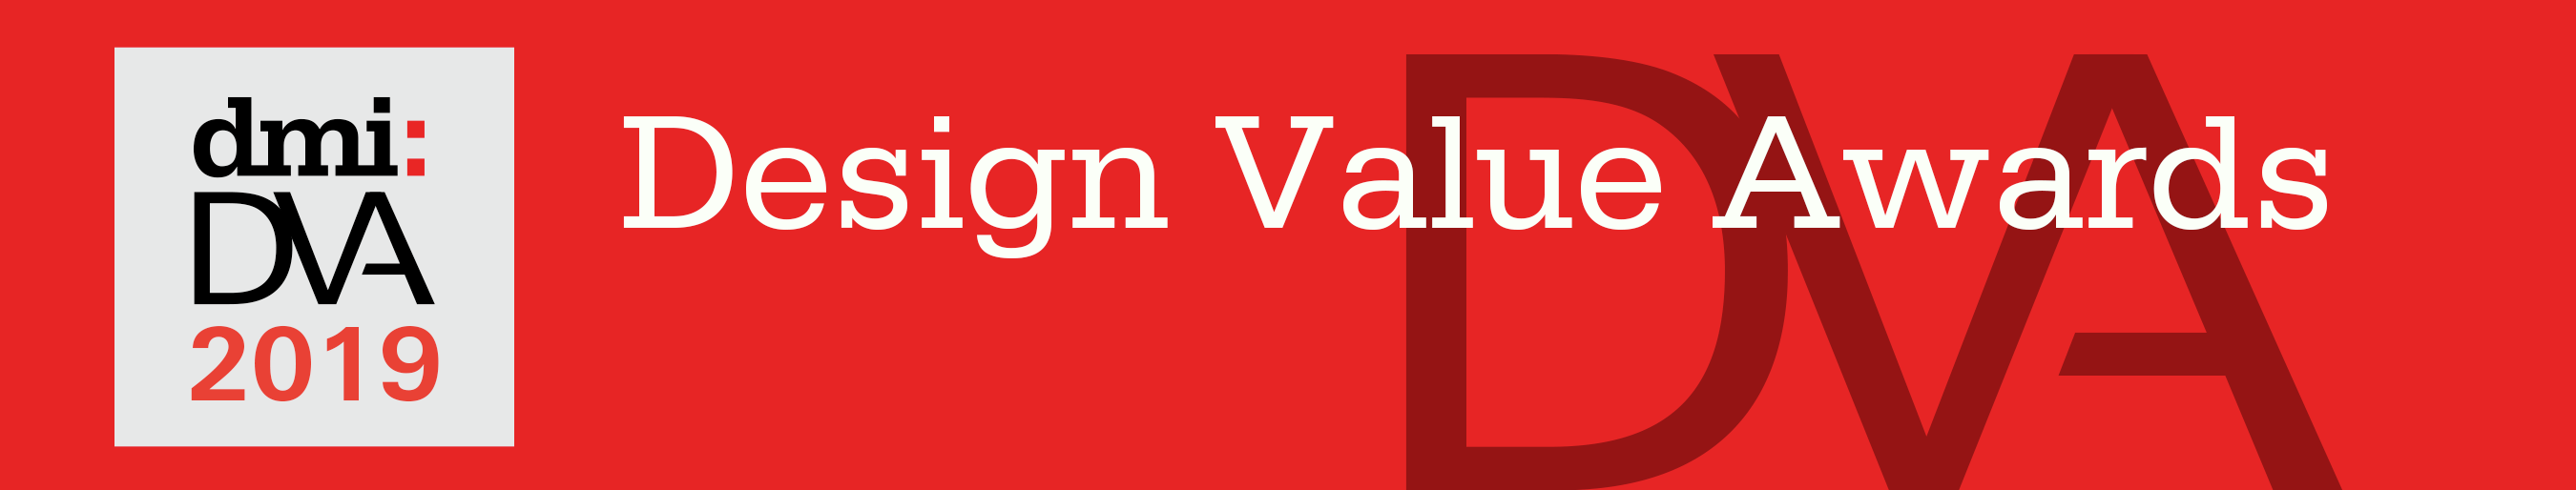 dmi:Design Value Awards